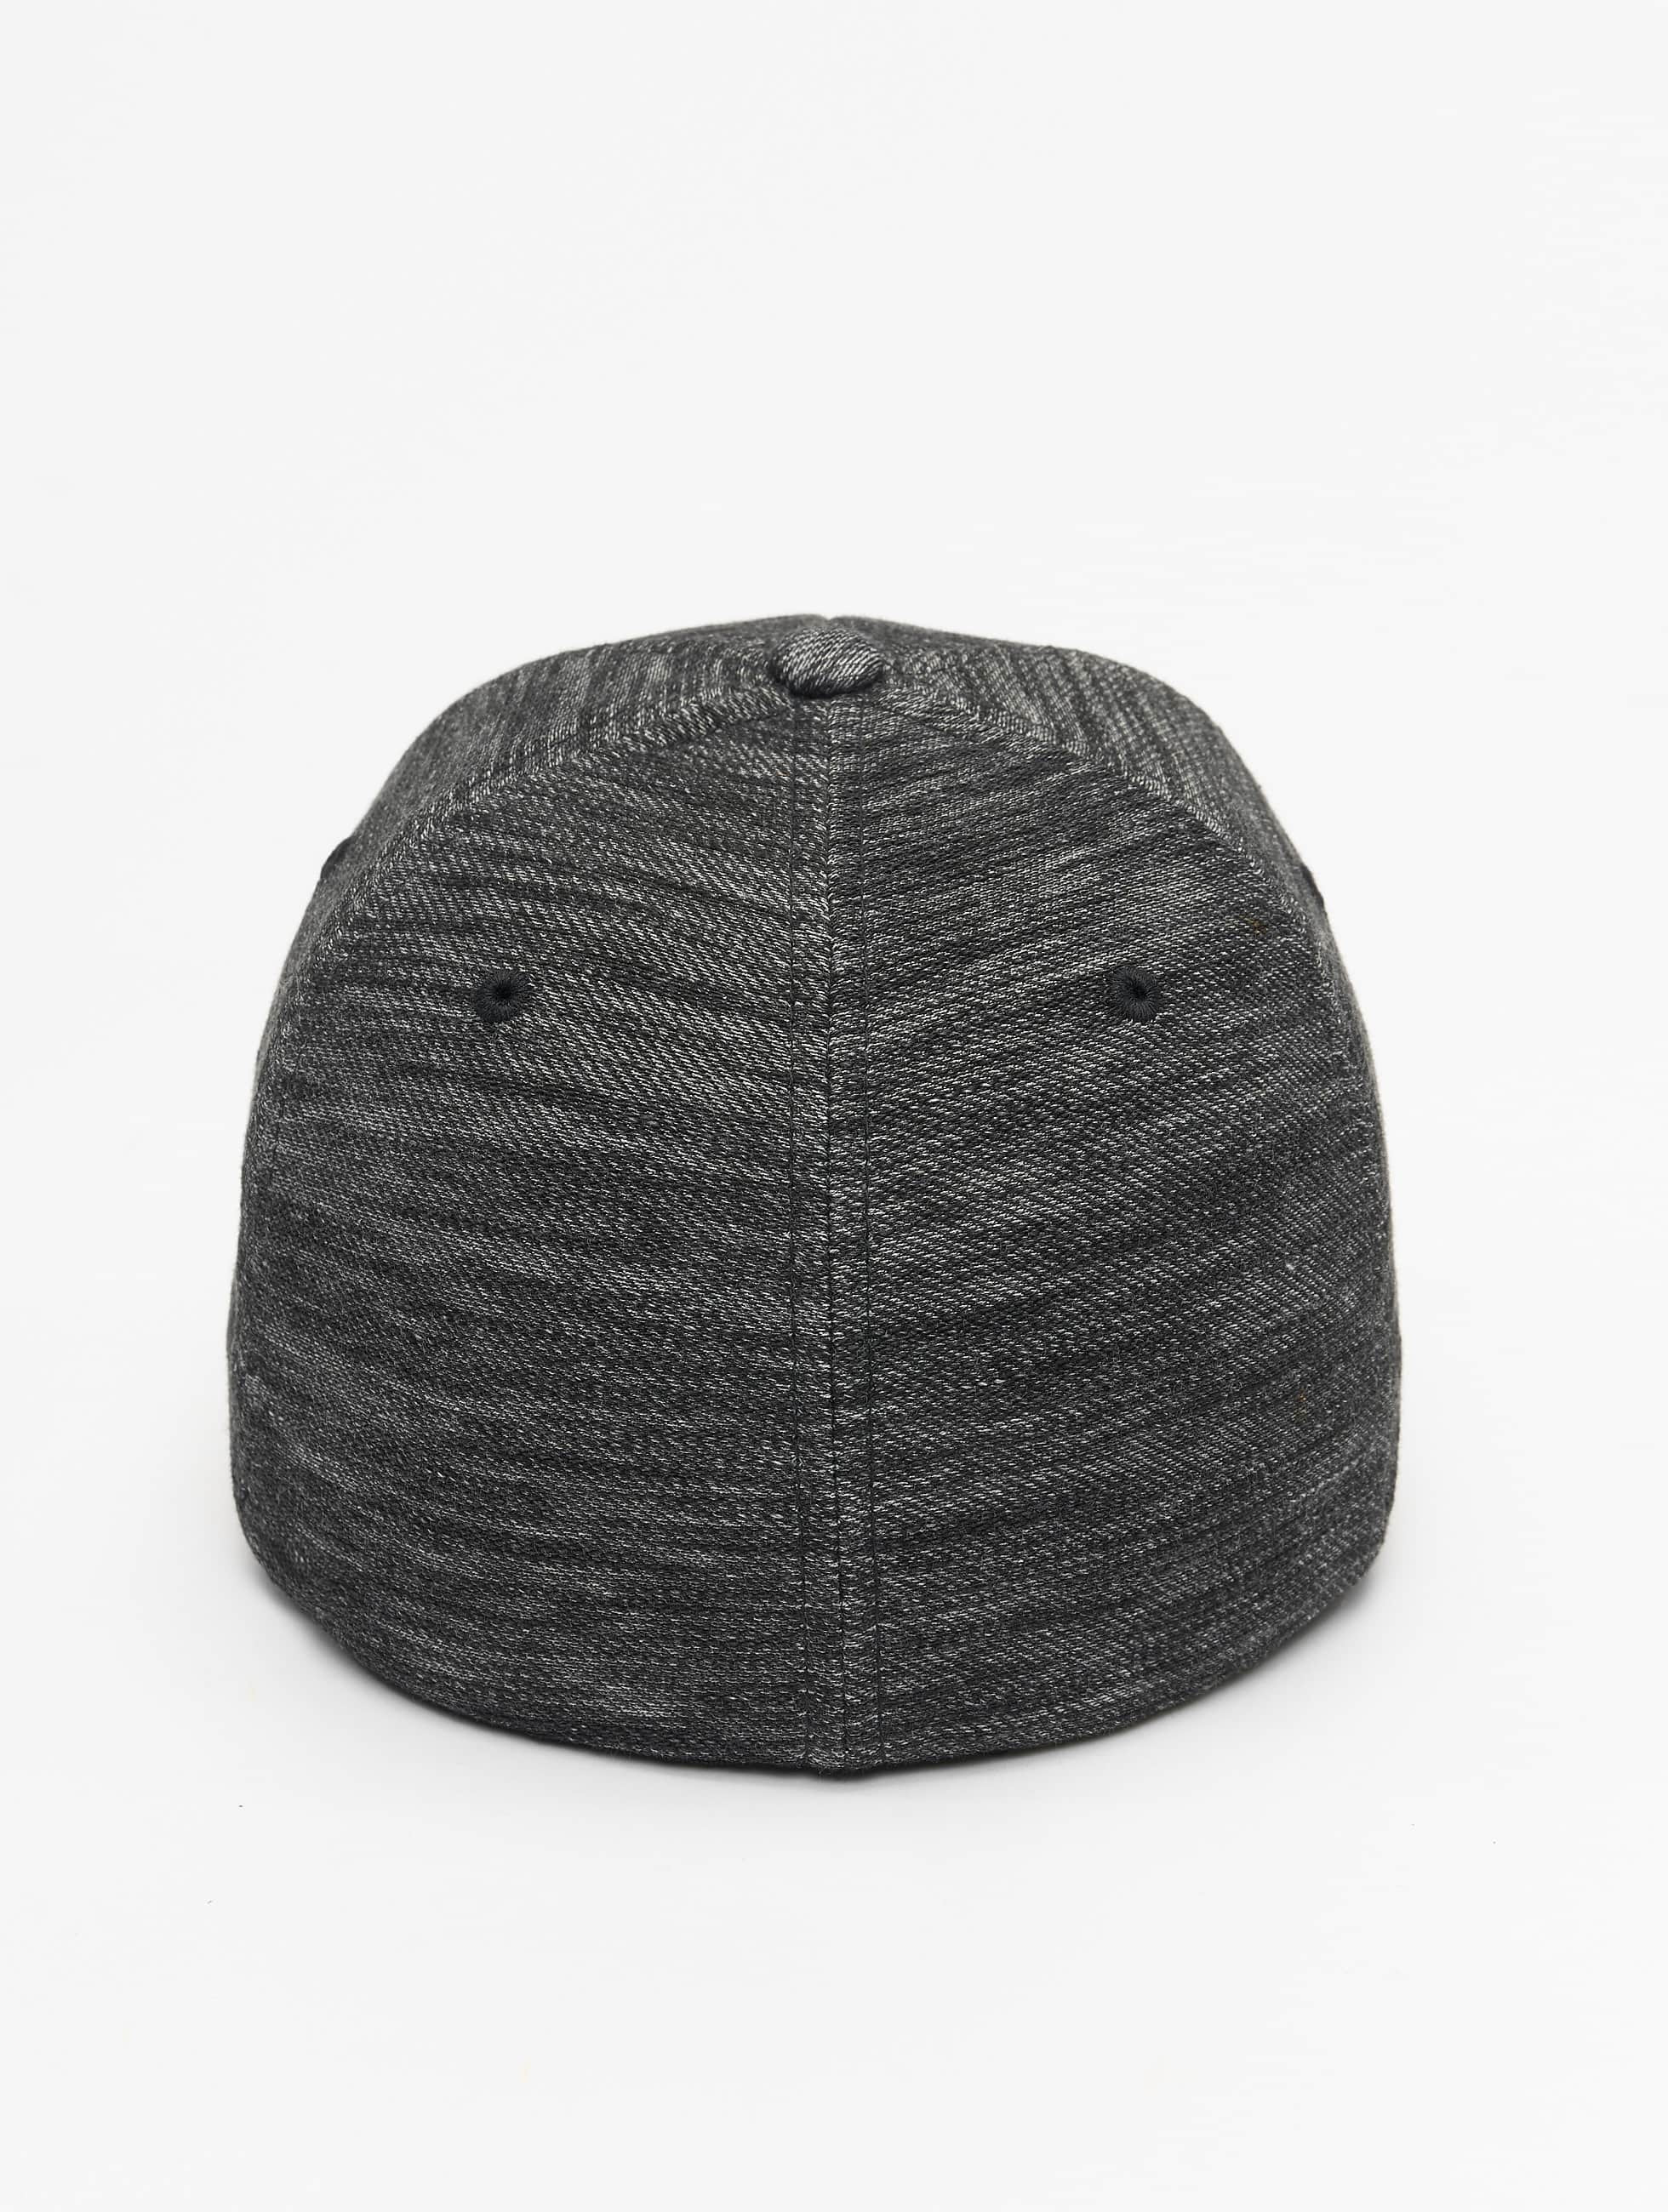 Flexfit Flexfitted Cap Twill Knit šedá